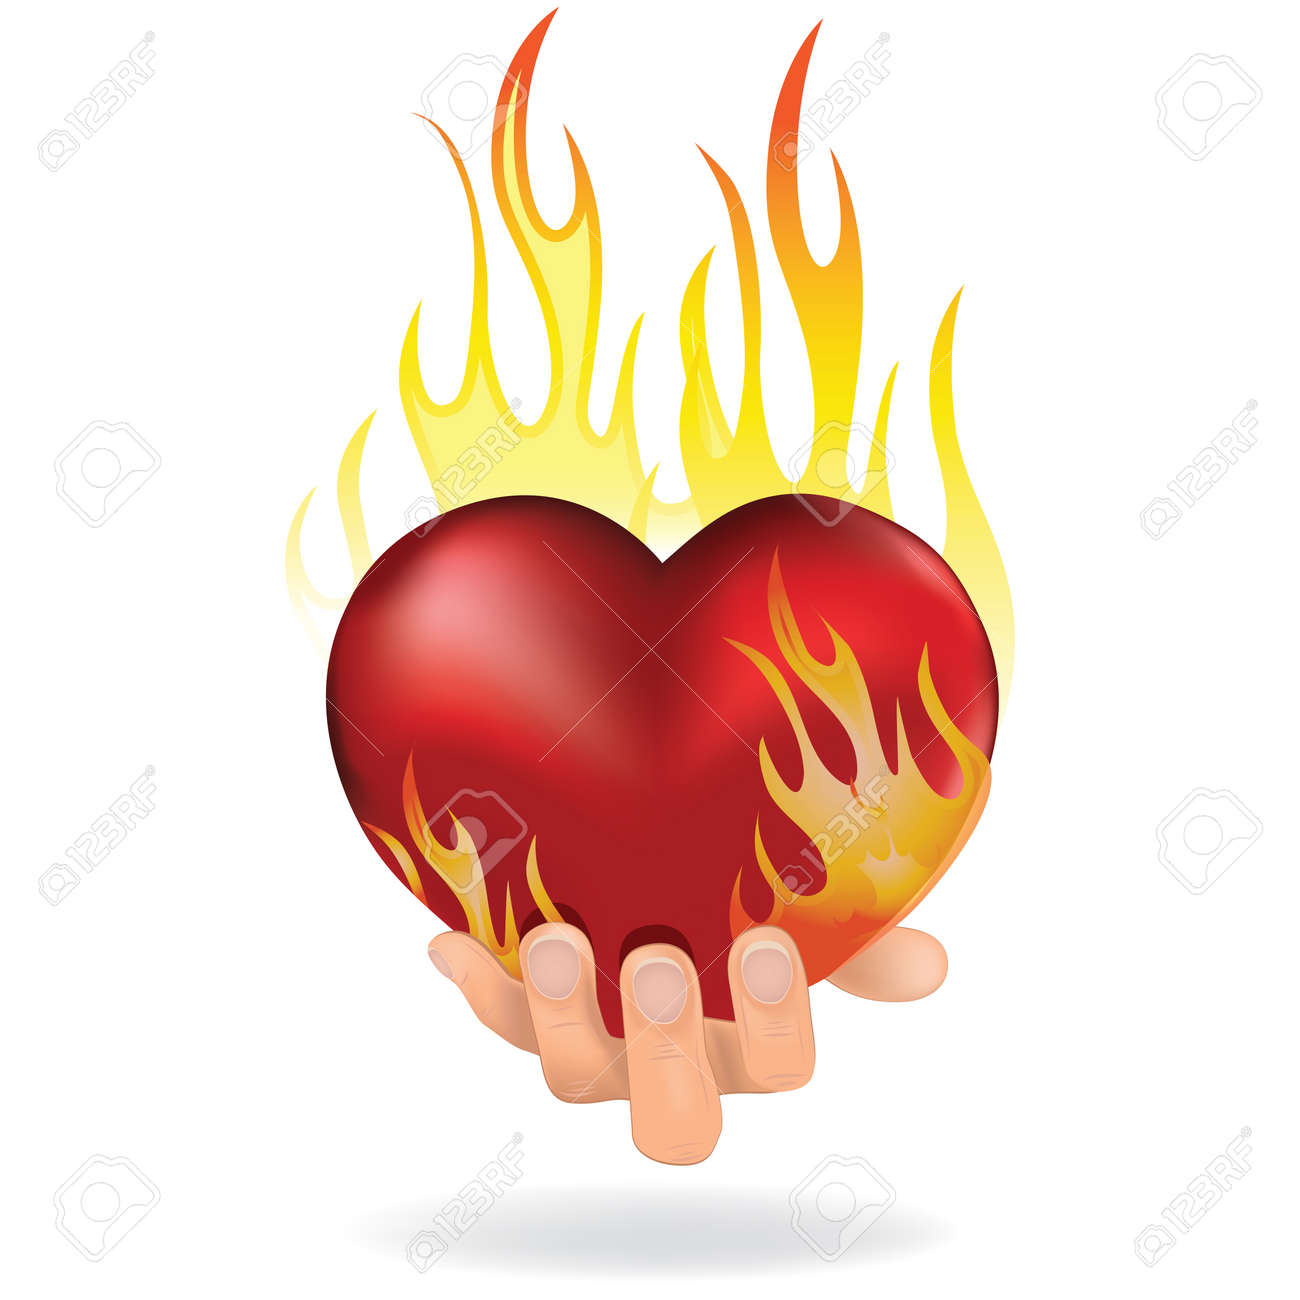 Heart love in fire icon gift to woman  Valentine day passion illustration Stock Vector - 13080885